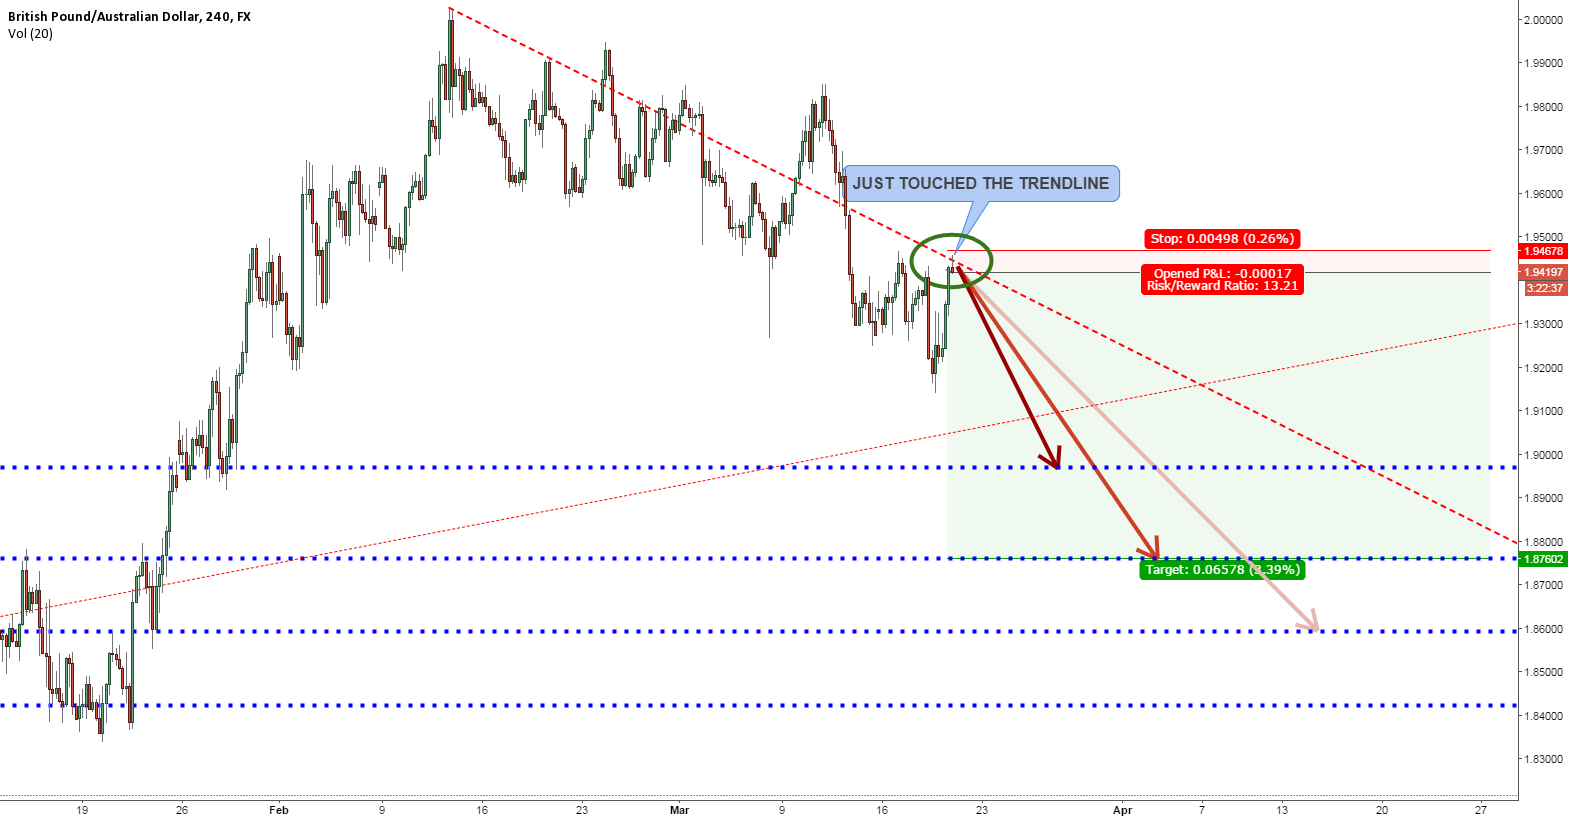 GBPAUD AT THE DOWNTREND TRENDLINE